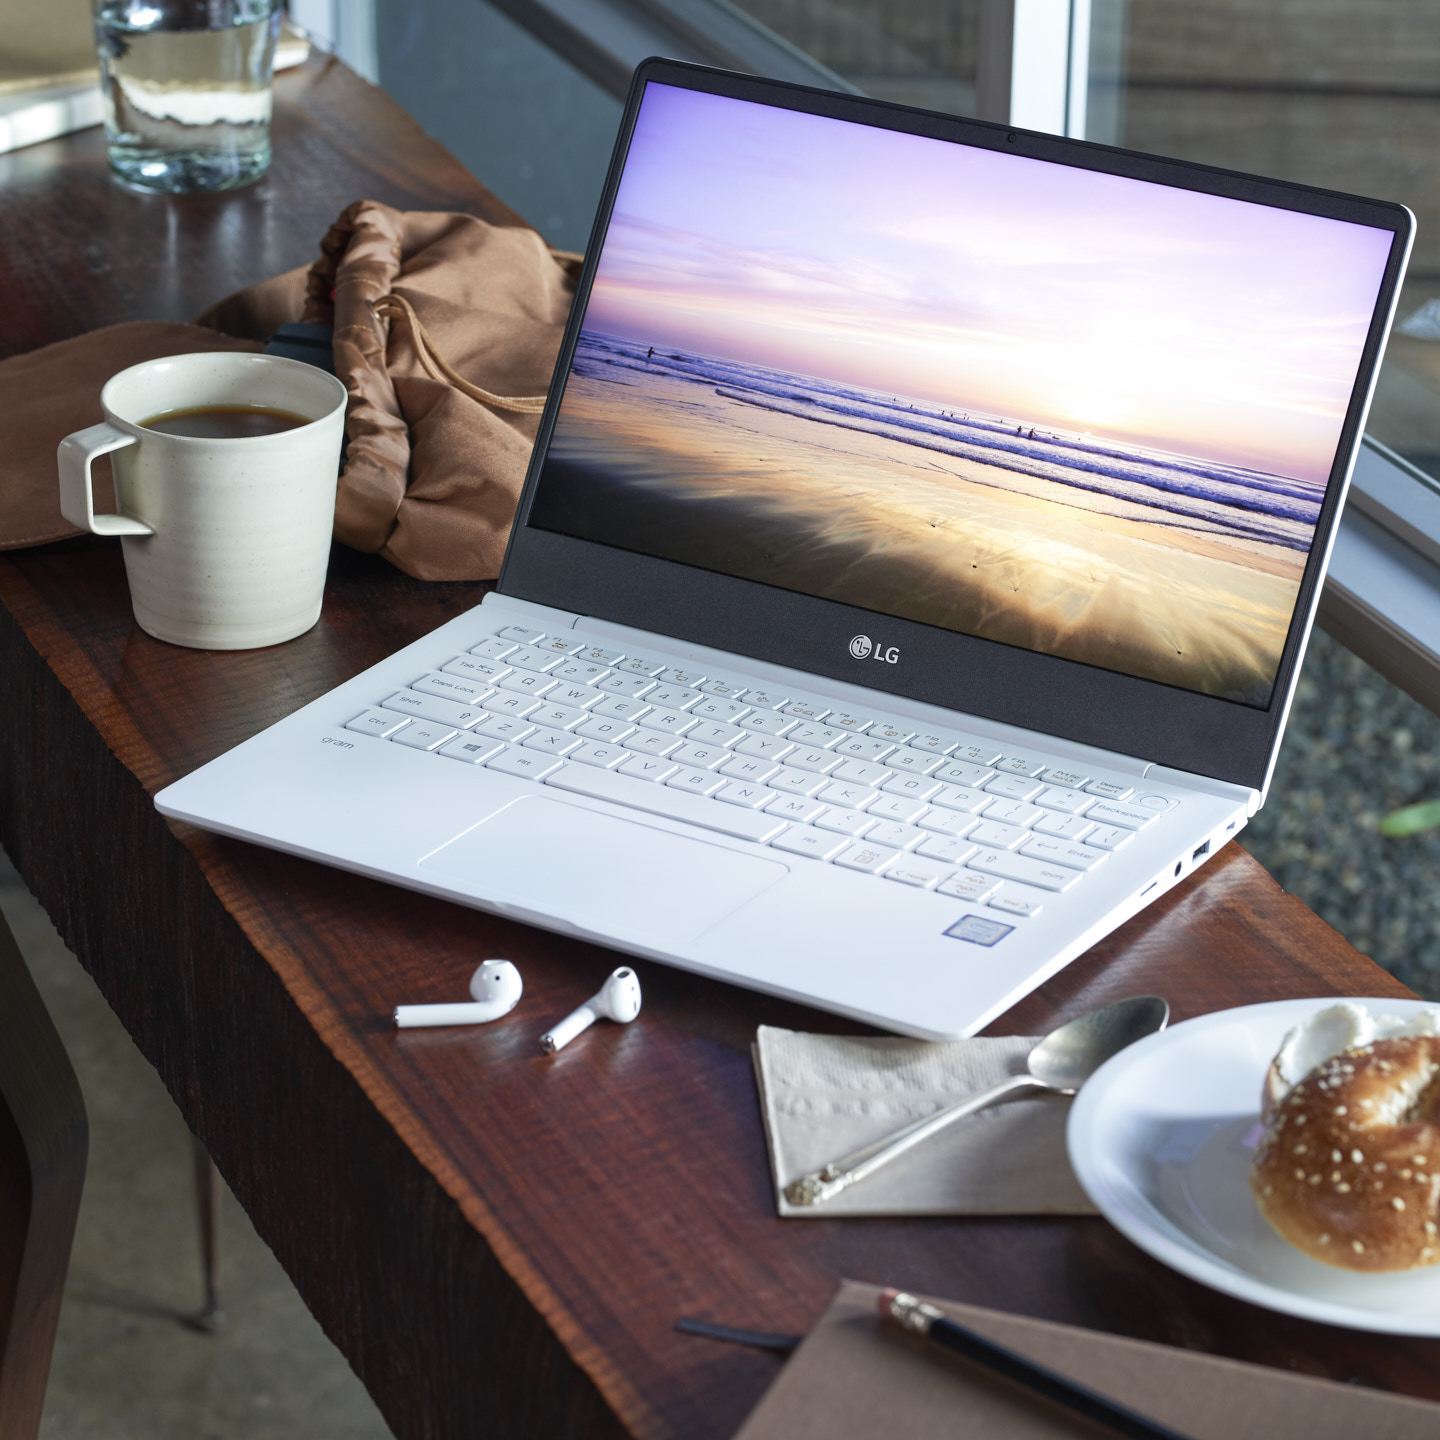 LG Gram Laptop Notebook shot by Matthew Roharik Los Angeles Lifestyle Product Photographer